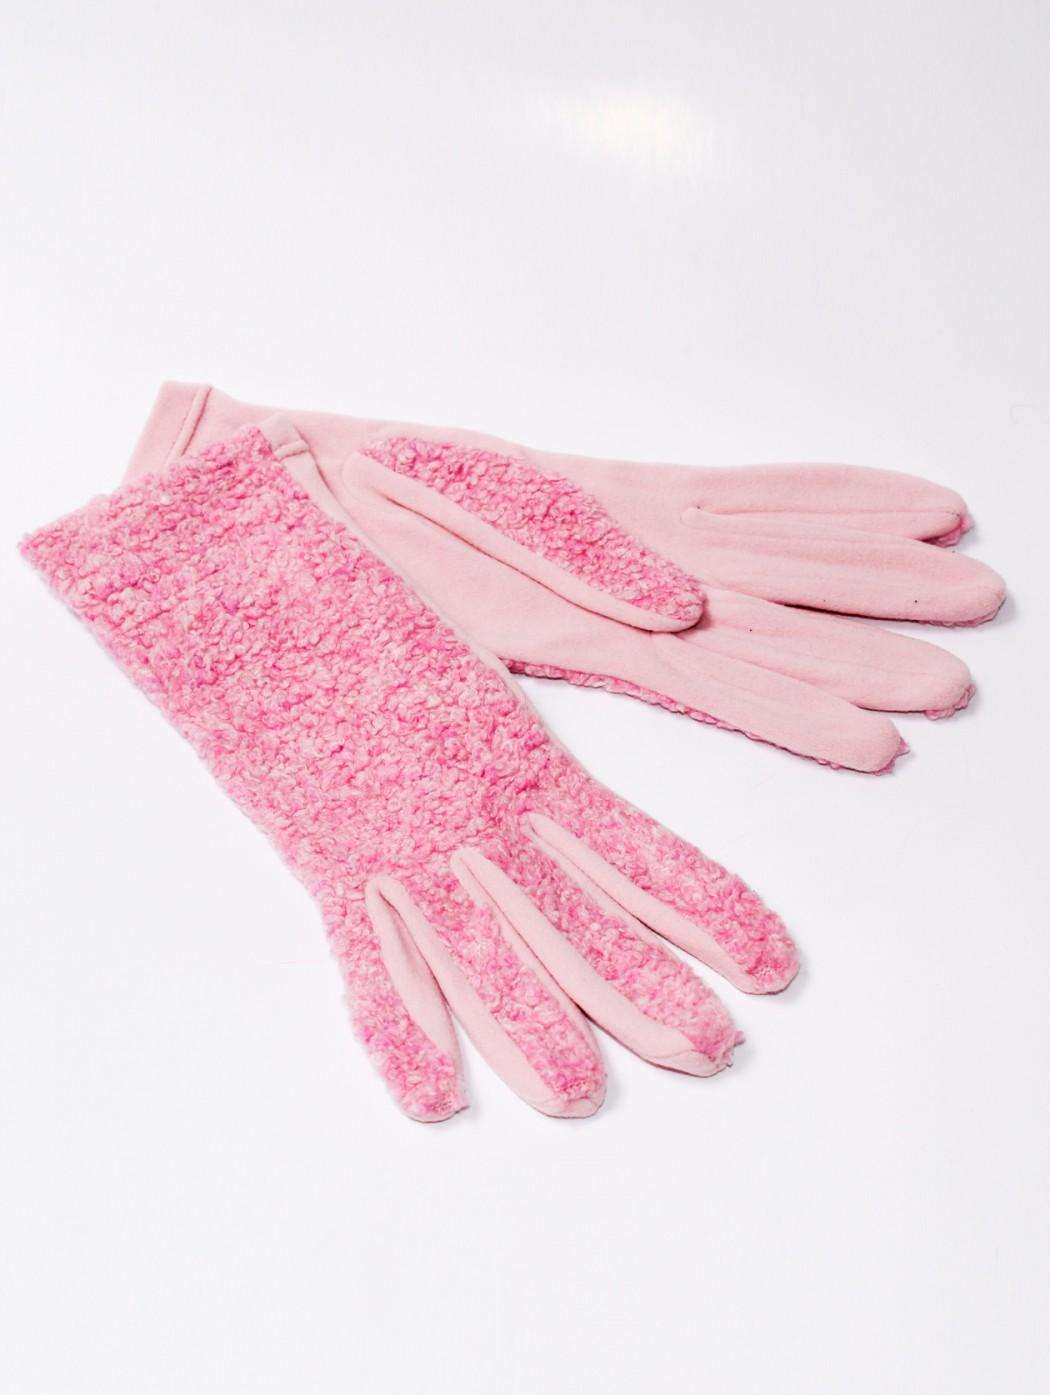 Italian plain fleece pink...